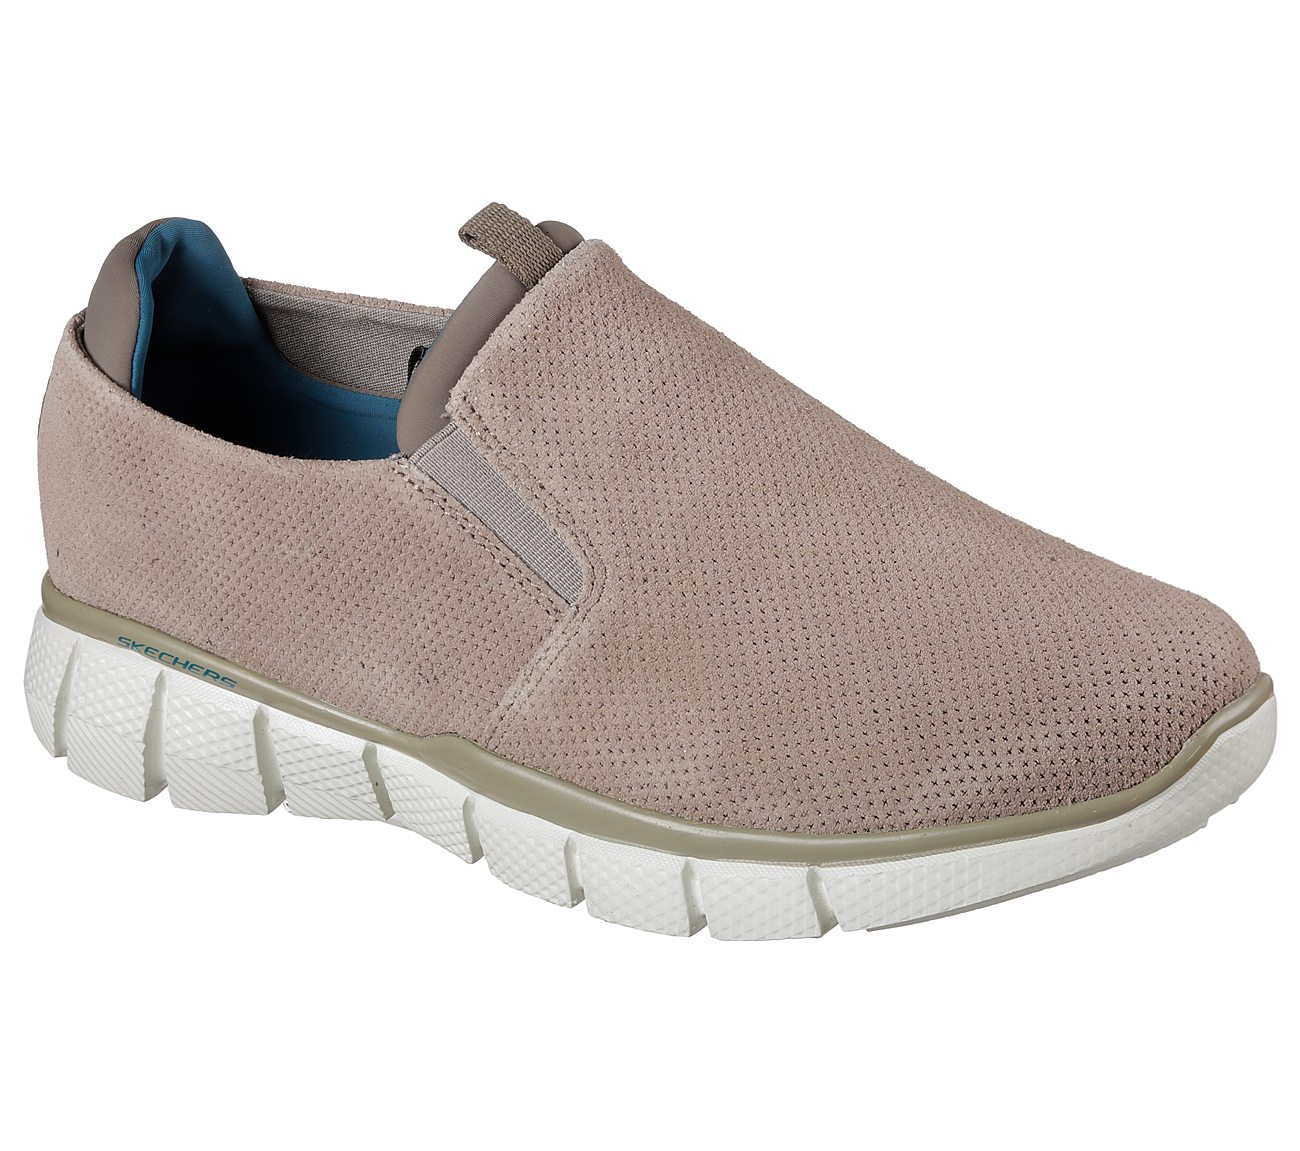 181faf516dd6e Buy SKECHERS Equalizer 2.0 - Lodini Relaxed Fit Shoes only $46.00